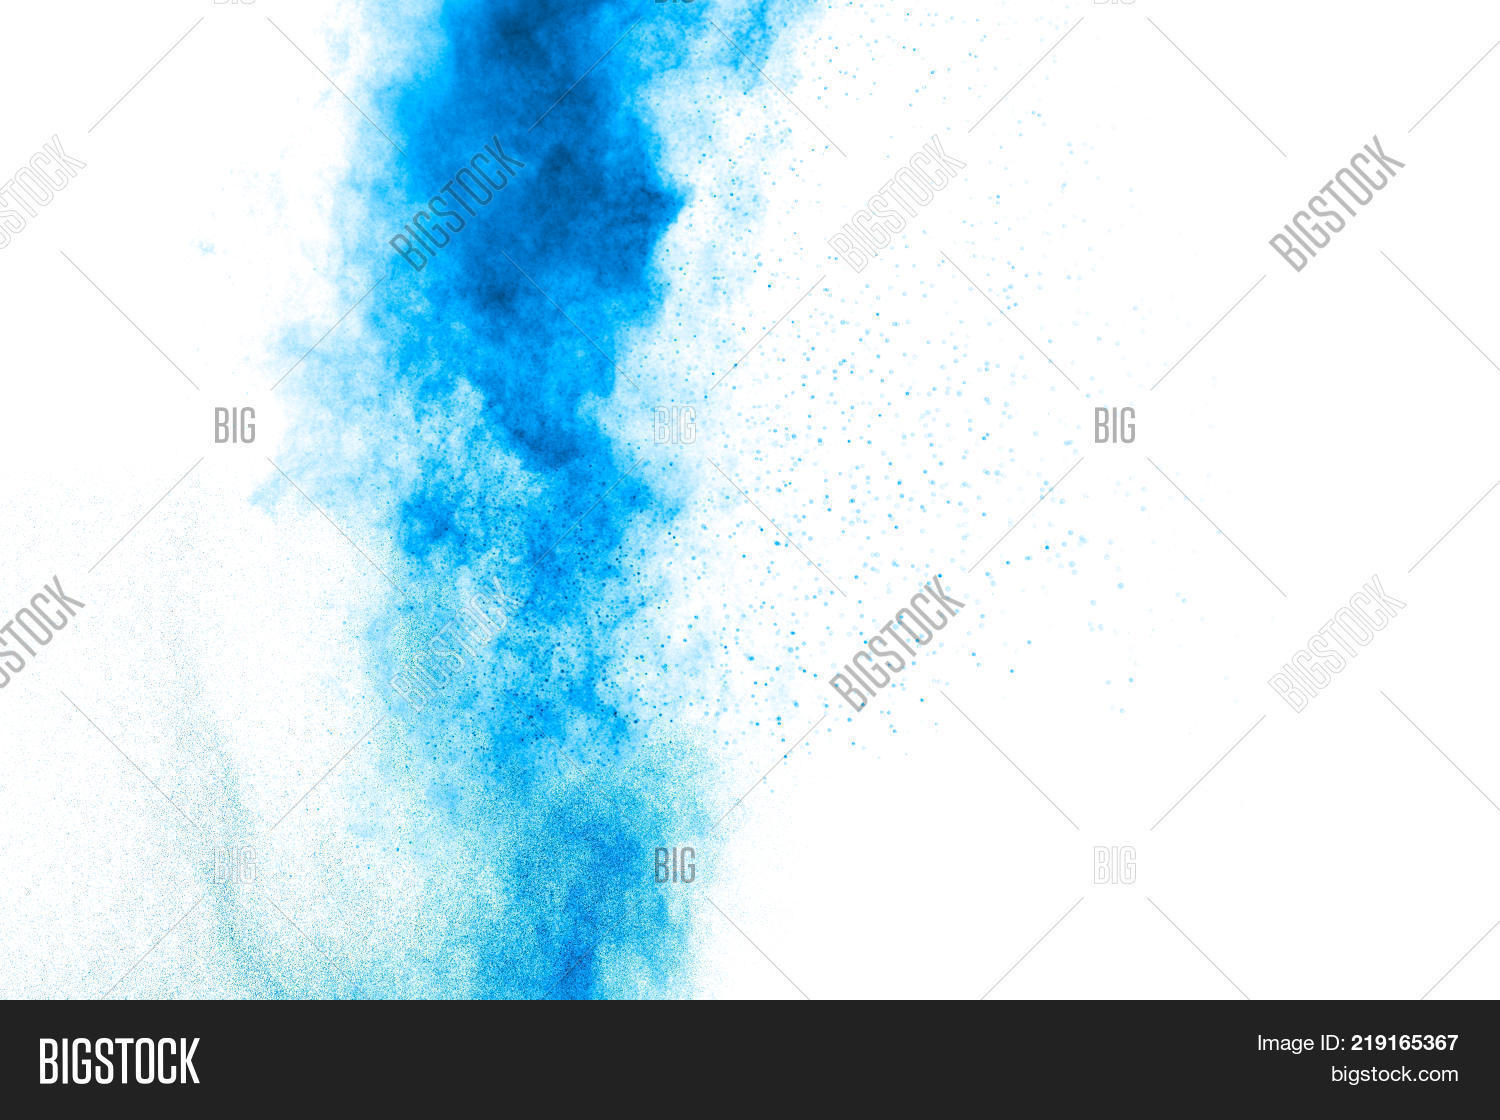 abstract,apocalypse,background,beauty,black,blue,burst,celebrate,cloud,color,colored,colorful,colour,dust,explode,explosion,explosive,flame,flour,galaxy,glow,holi,ink,isolated,movement,multicolored,mystery,paint,particle,pigment,powder,purple,red,shatter,smoke,sphere,splash,splatter,spray,sprinkle,storm,texture,vivid,wallpaper,white,wind,yellow